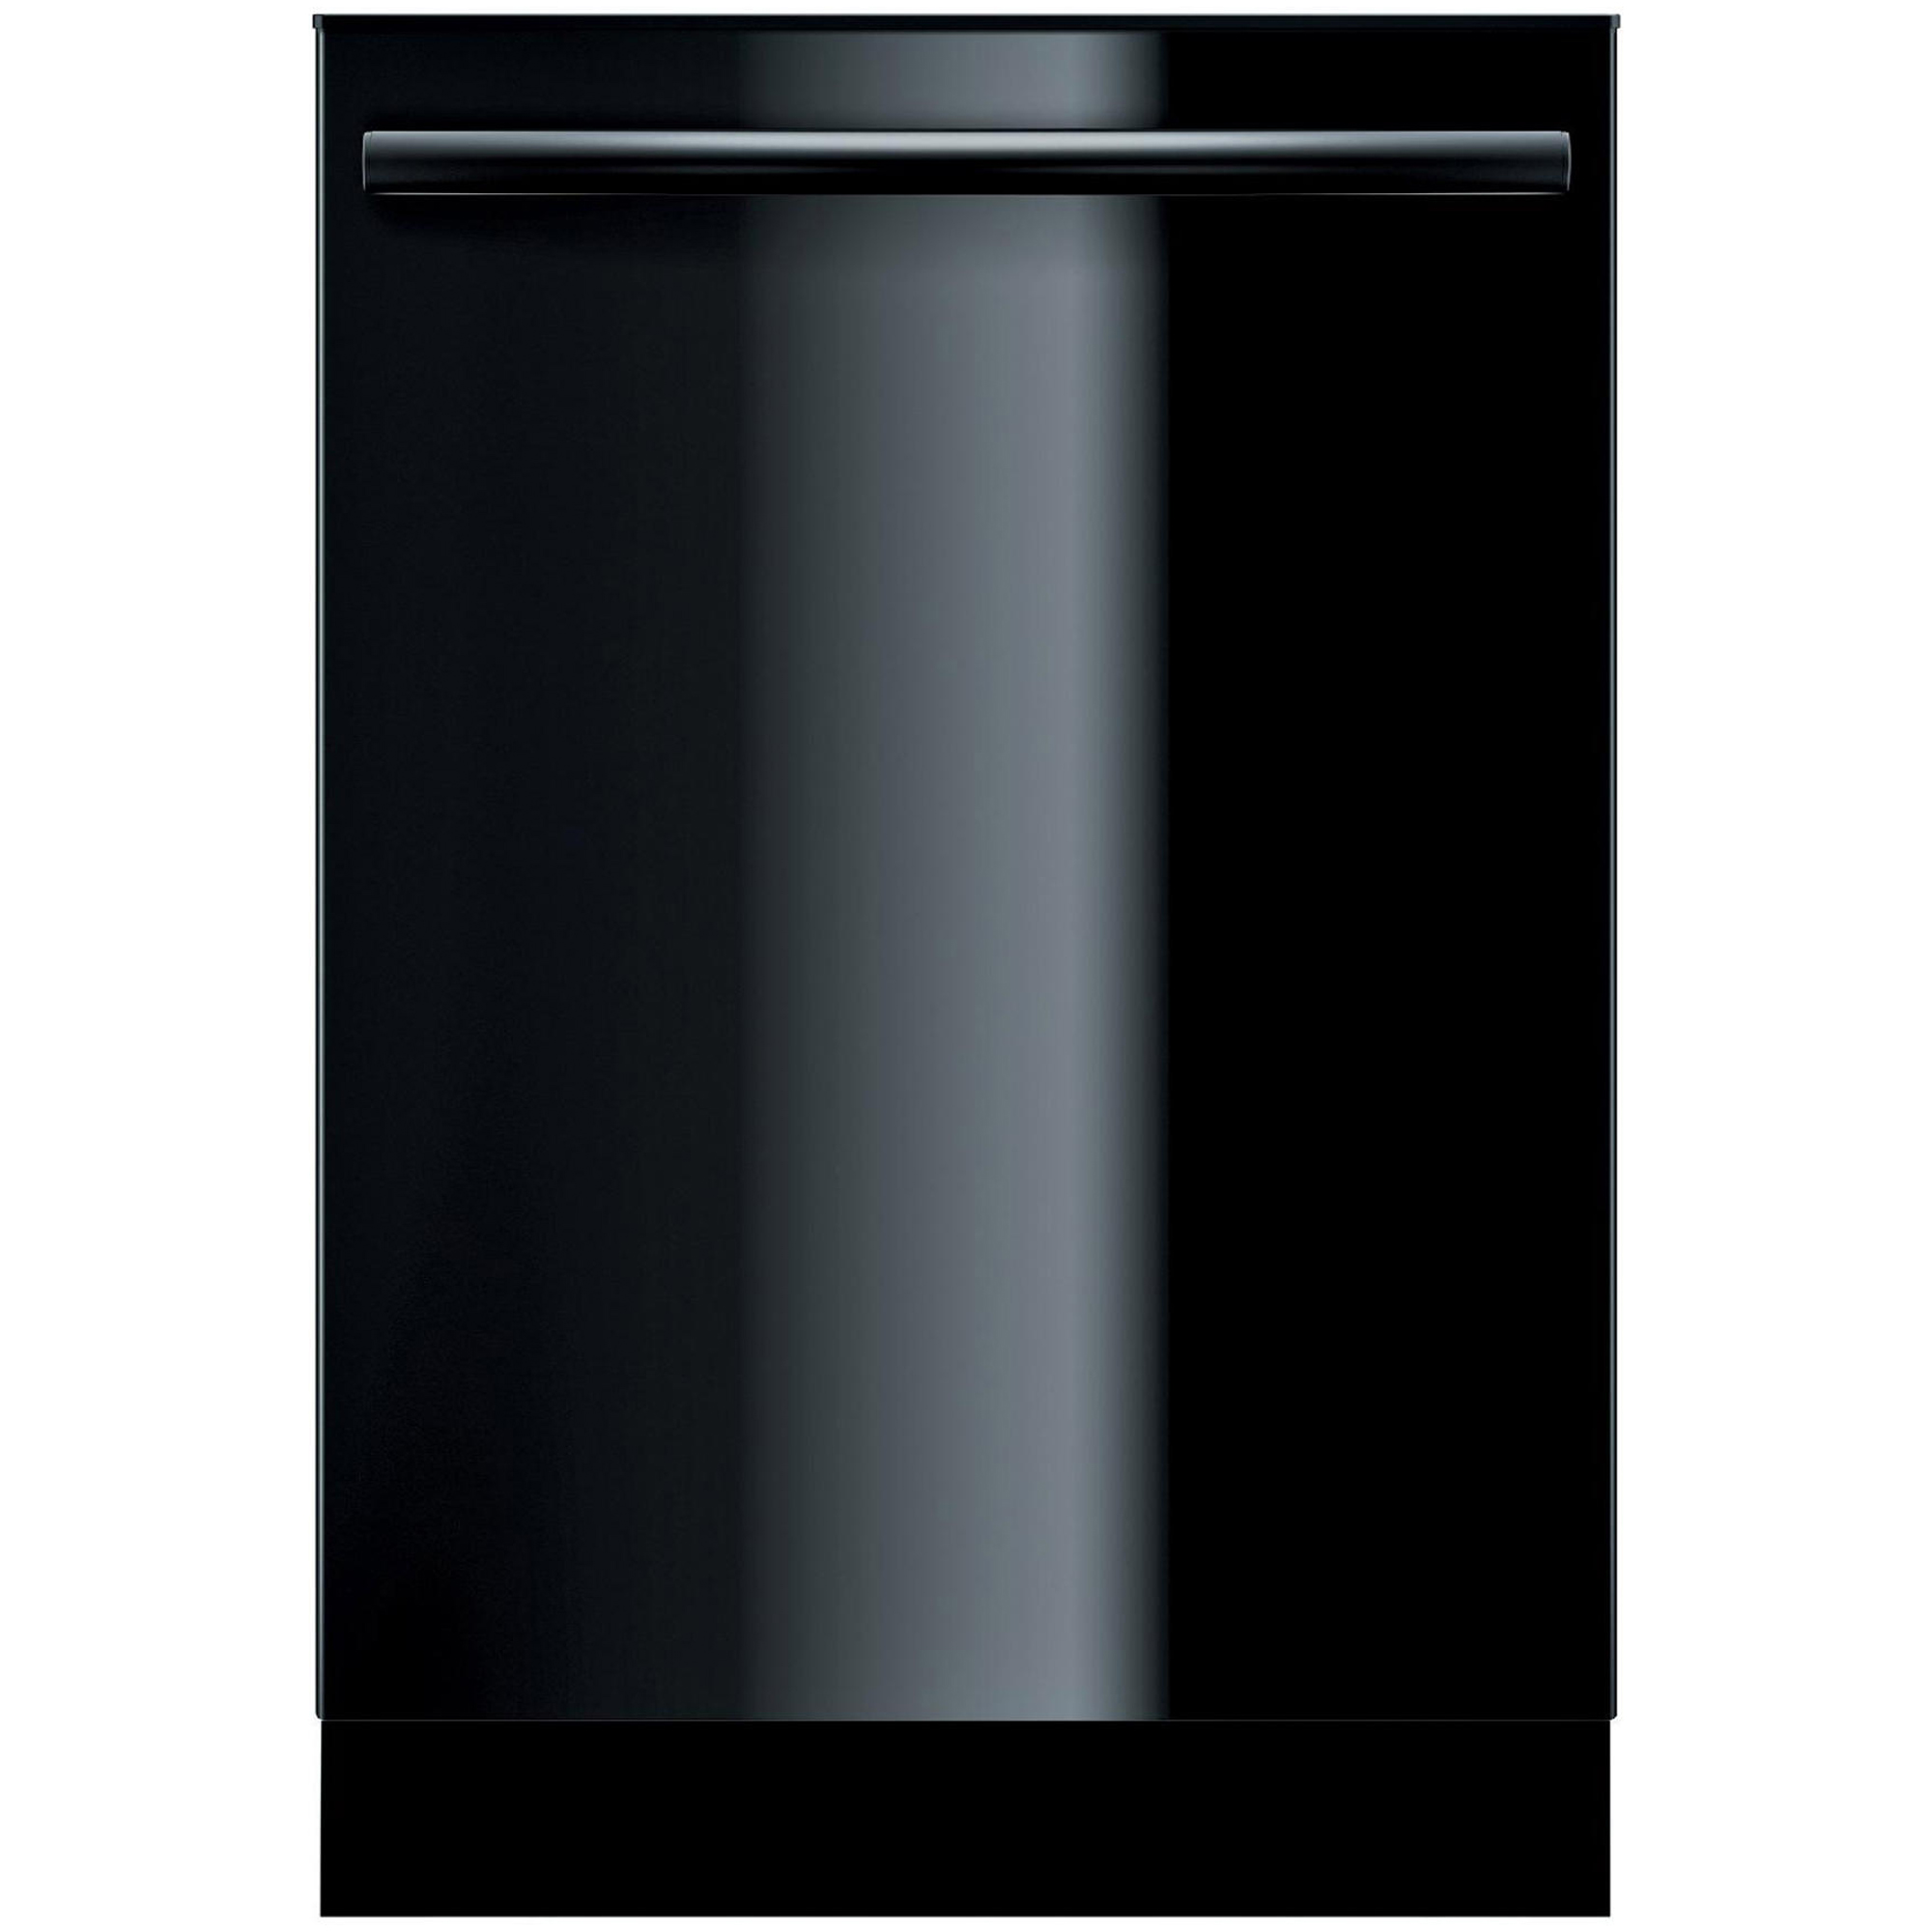 Bosch SHX3AR76UC 24 Built In Dishwasher Black